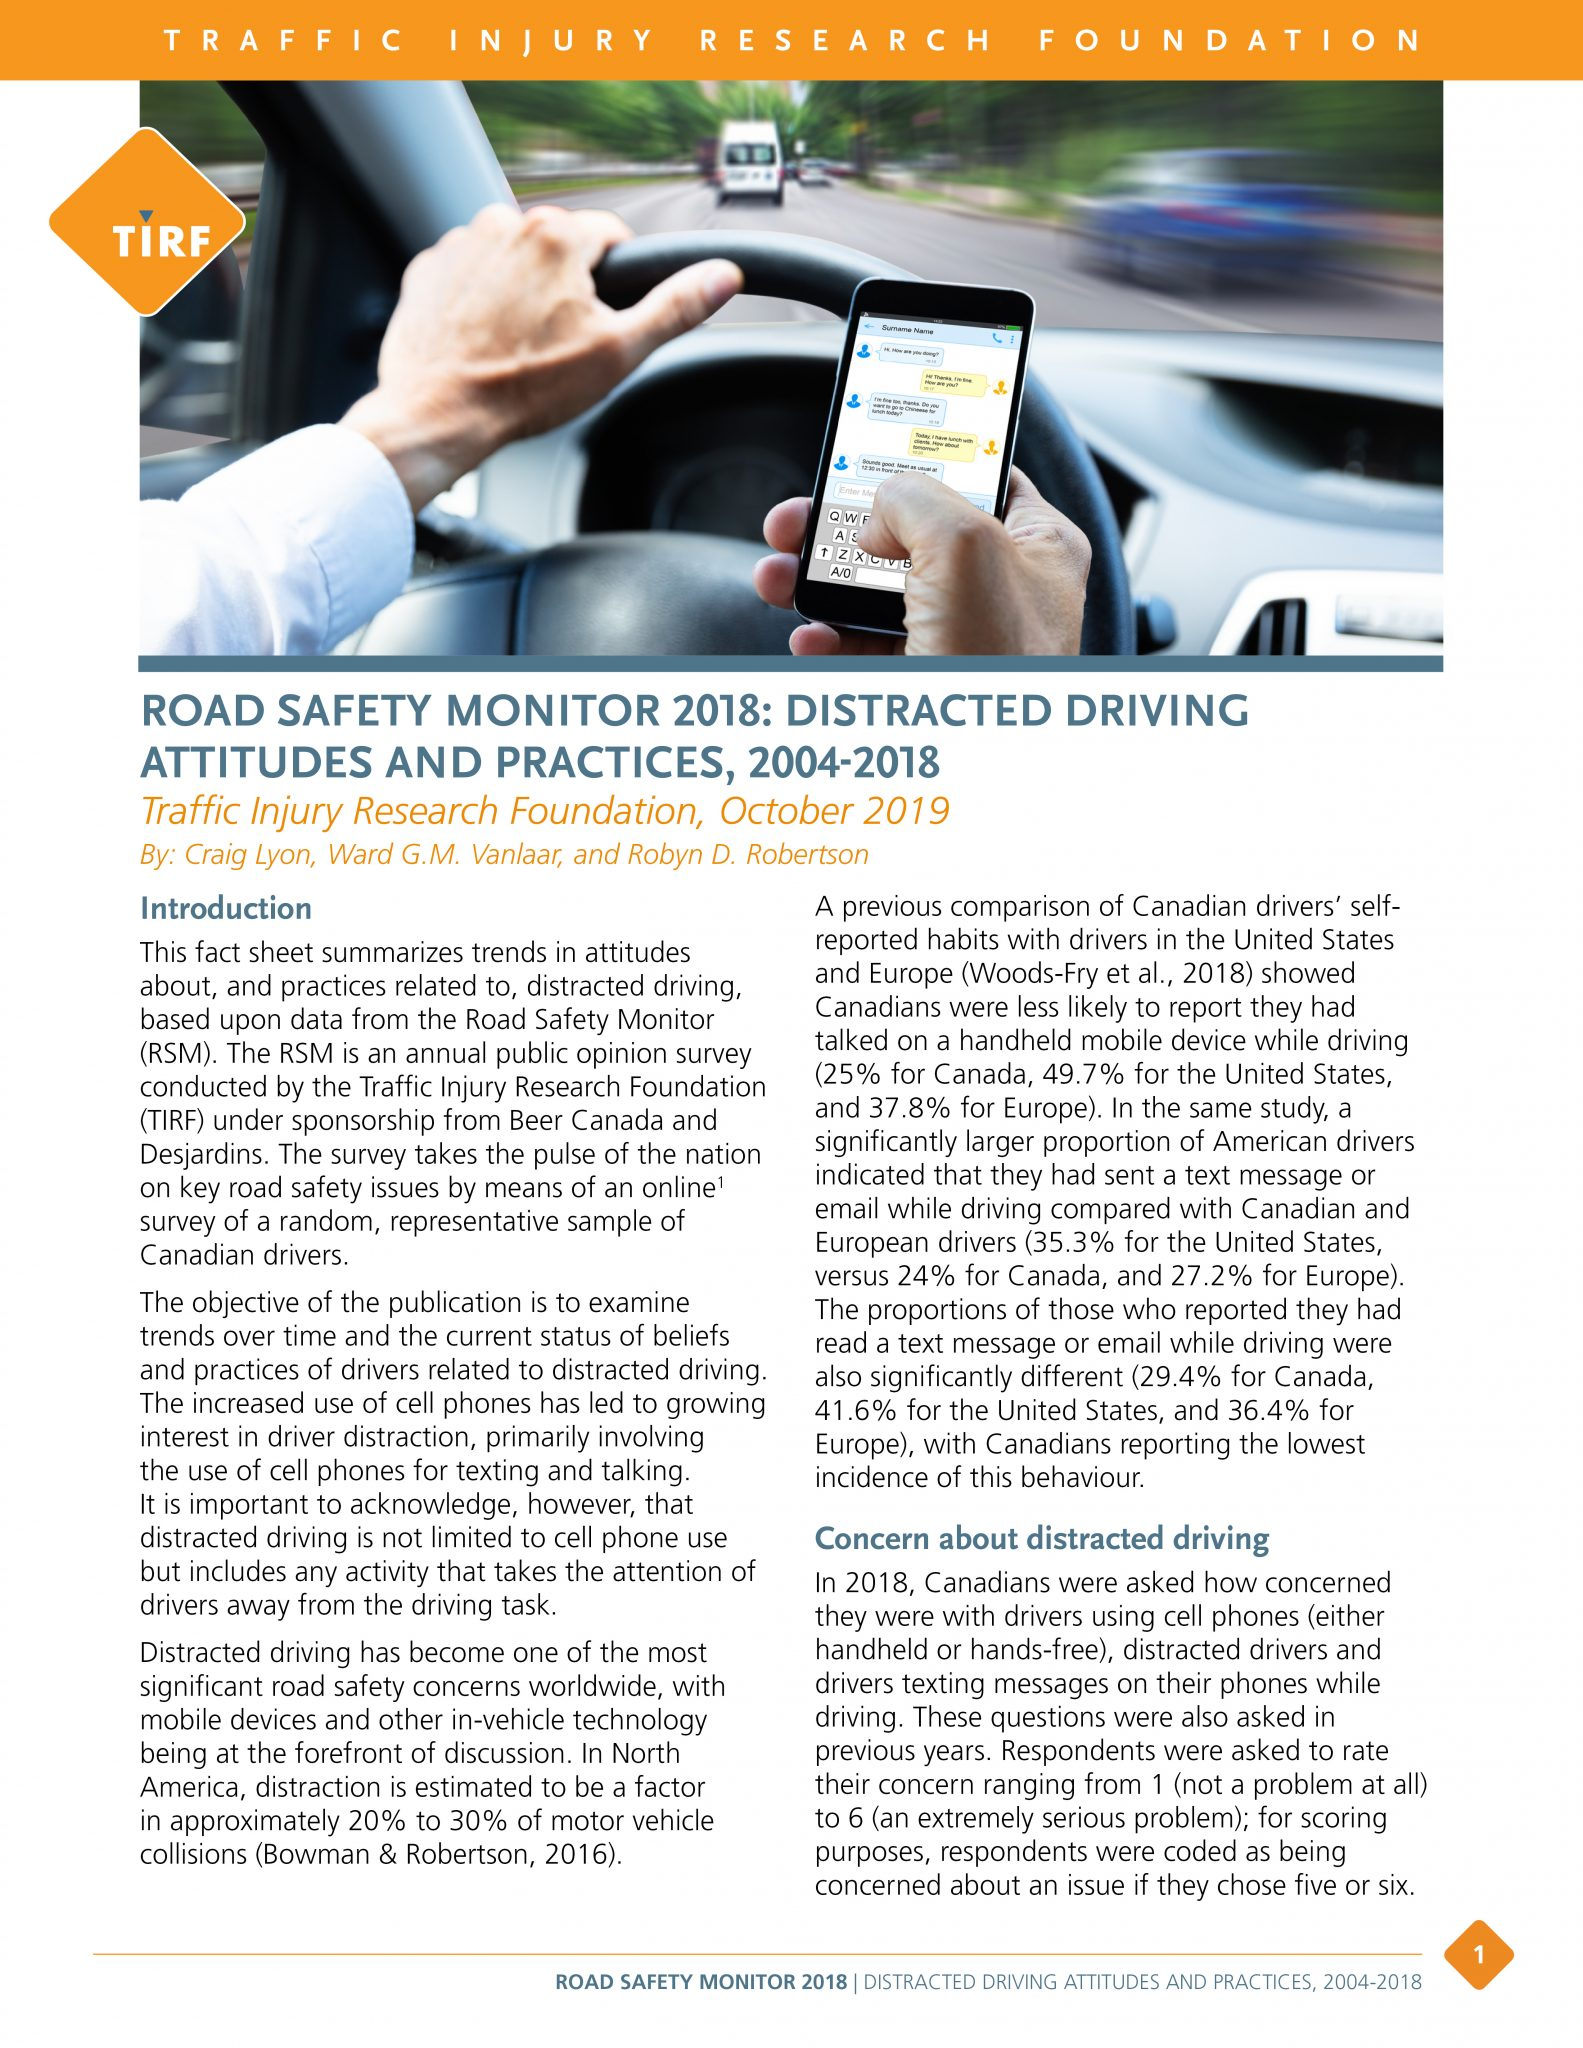 RSM Distracted Driving Attitudes and Practices, 2004-2018